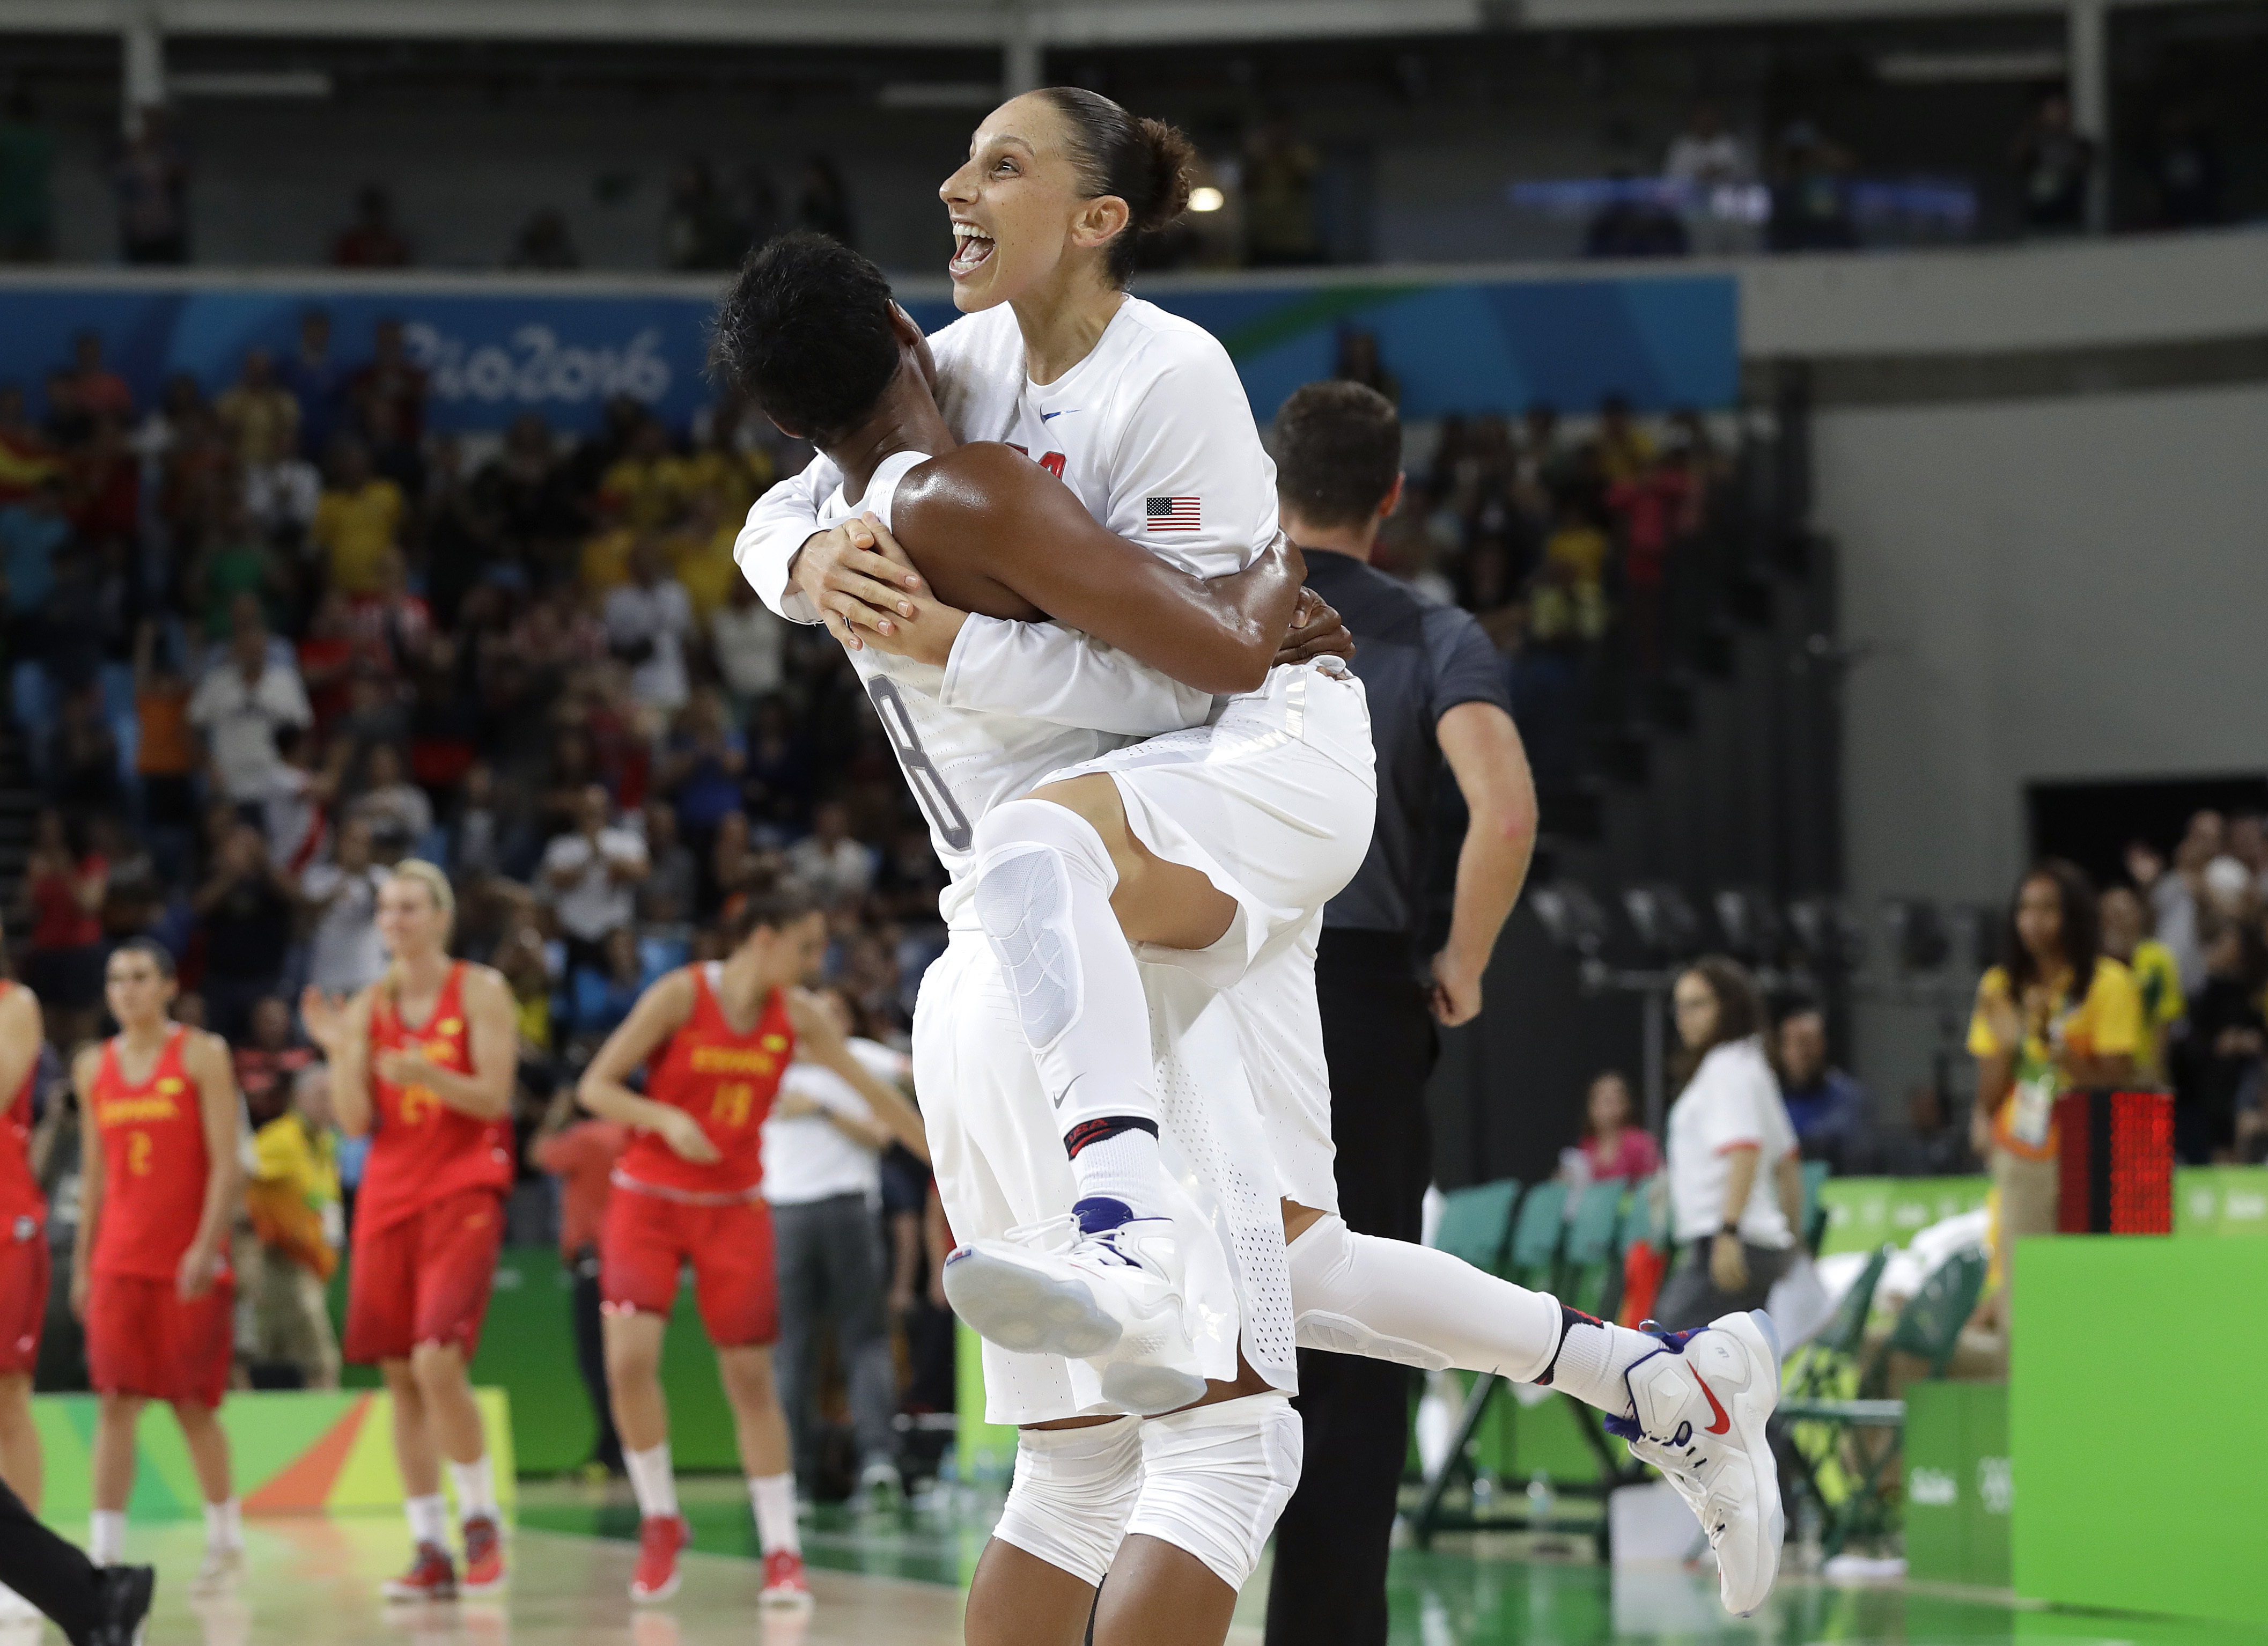 Diana Taurasi leaps into the arms of teammate Angel McCoughtry as they celebrate their win over Spain in a women's gold medal basketball game at the 2016 Summer Olympics, on Aug. 20, 2016.